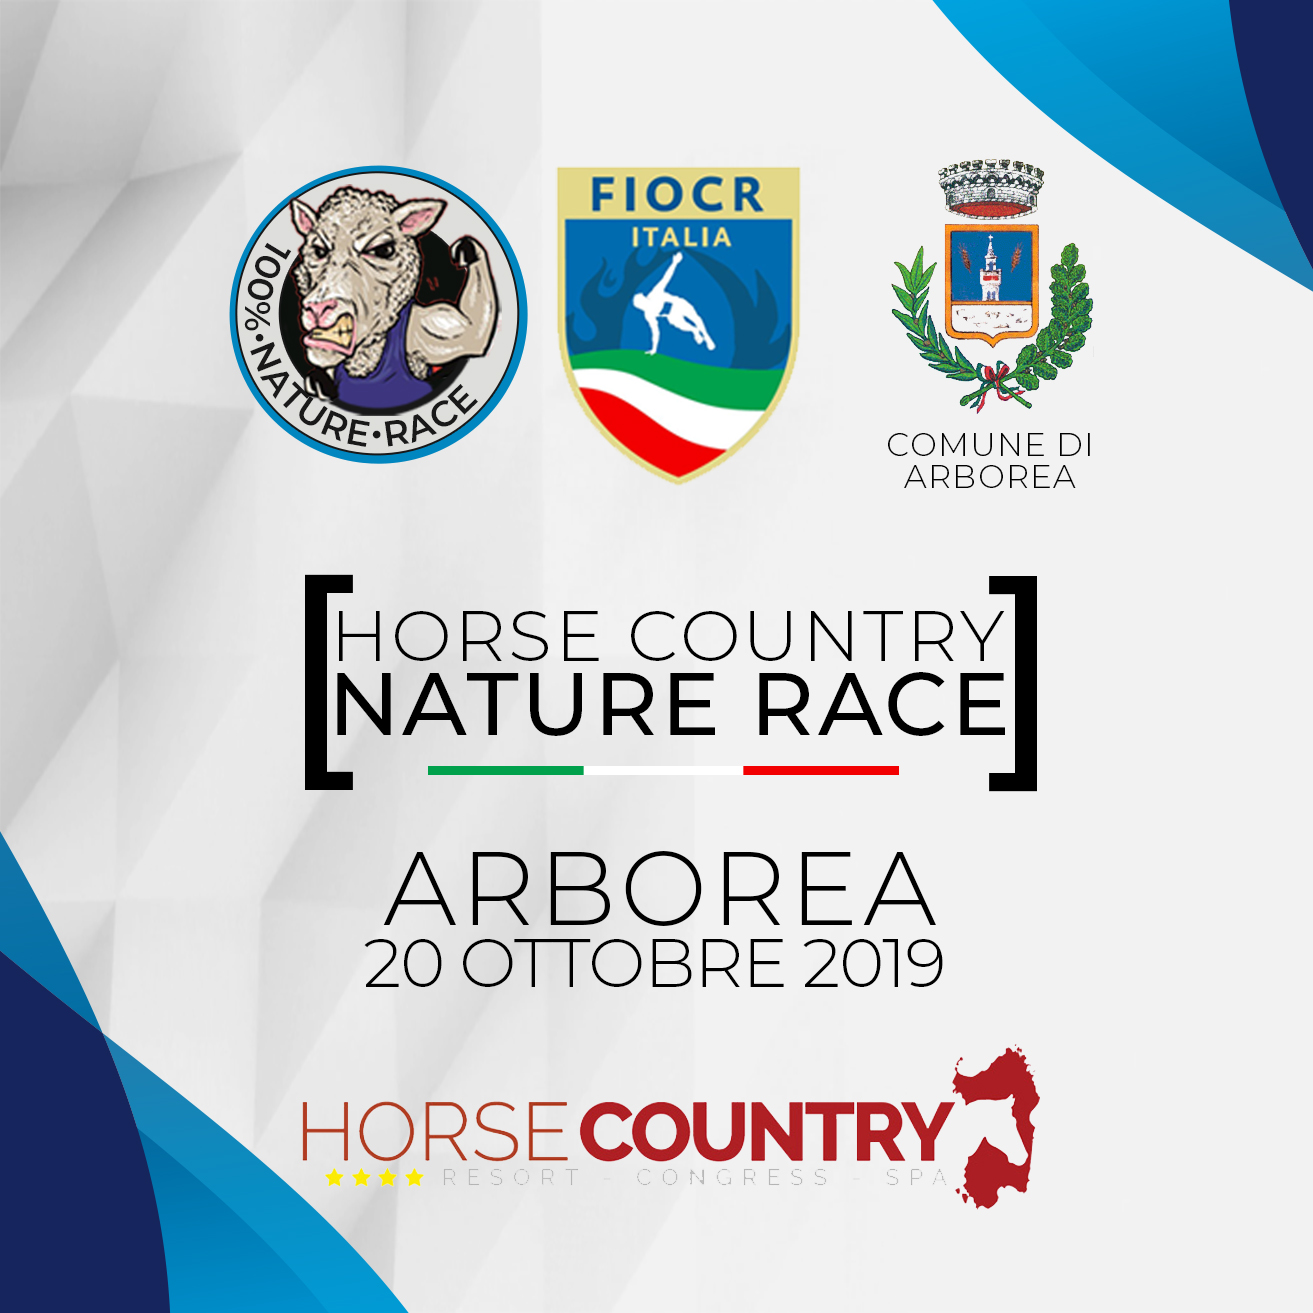 Nature Race